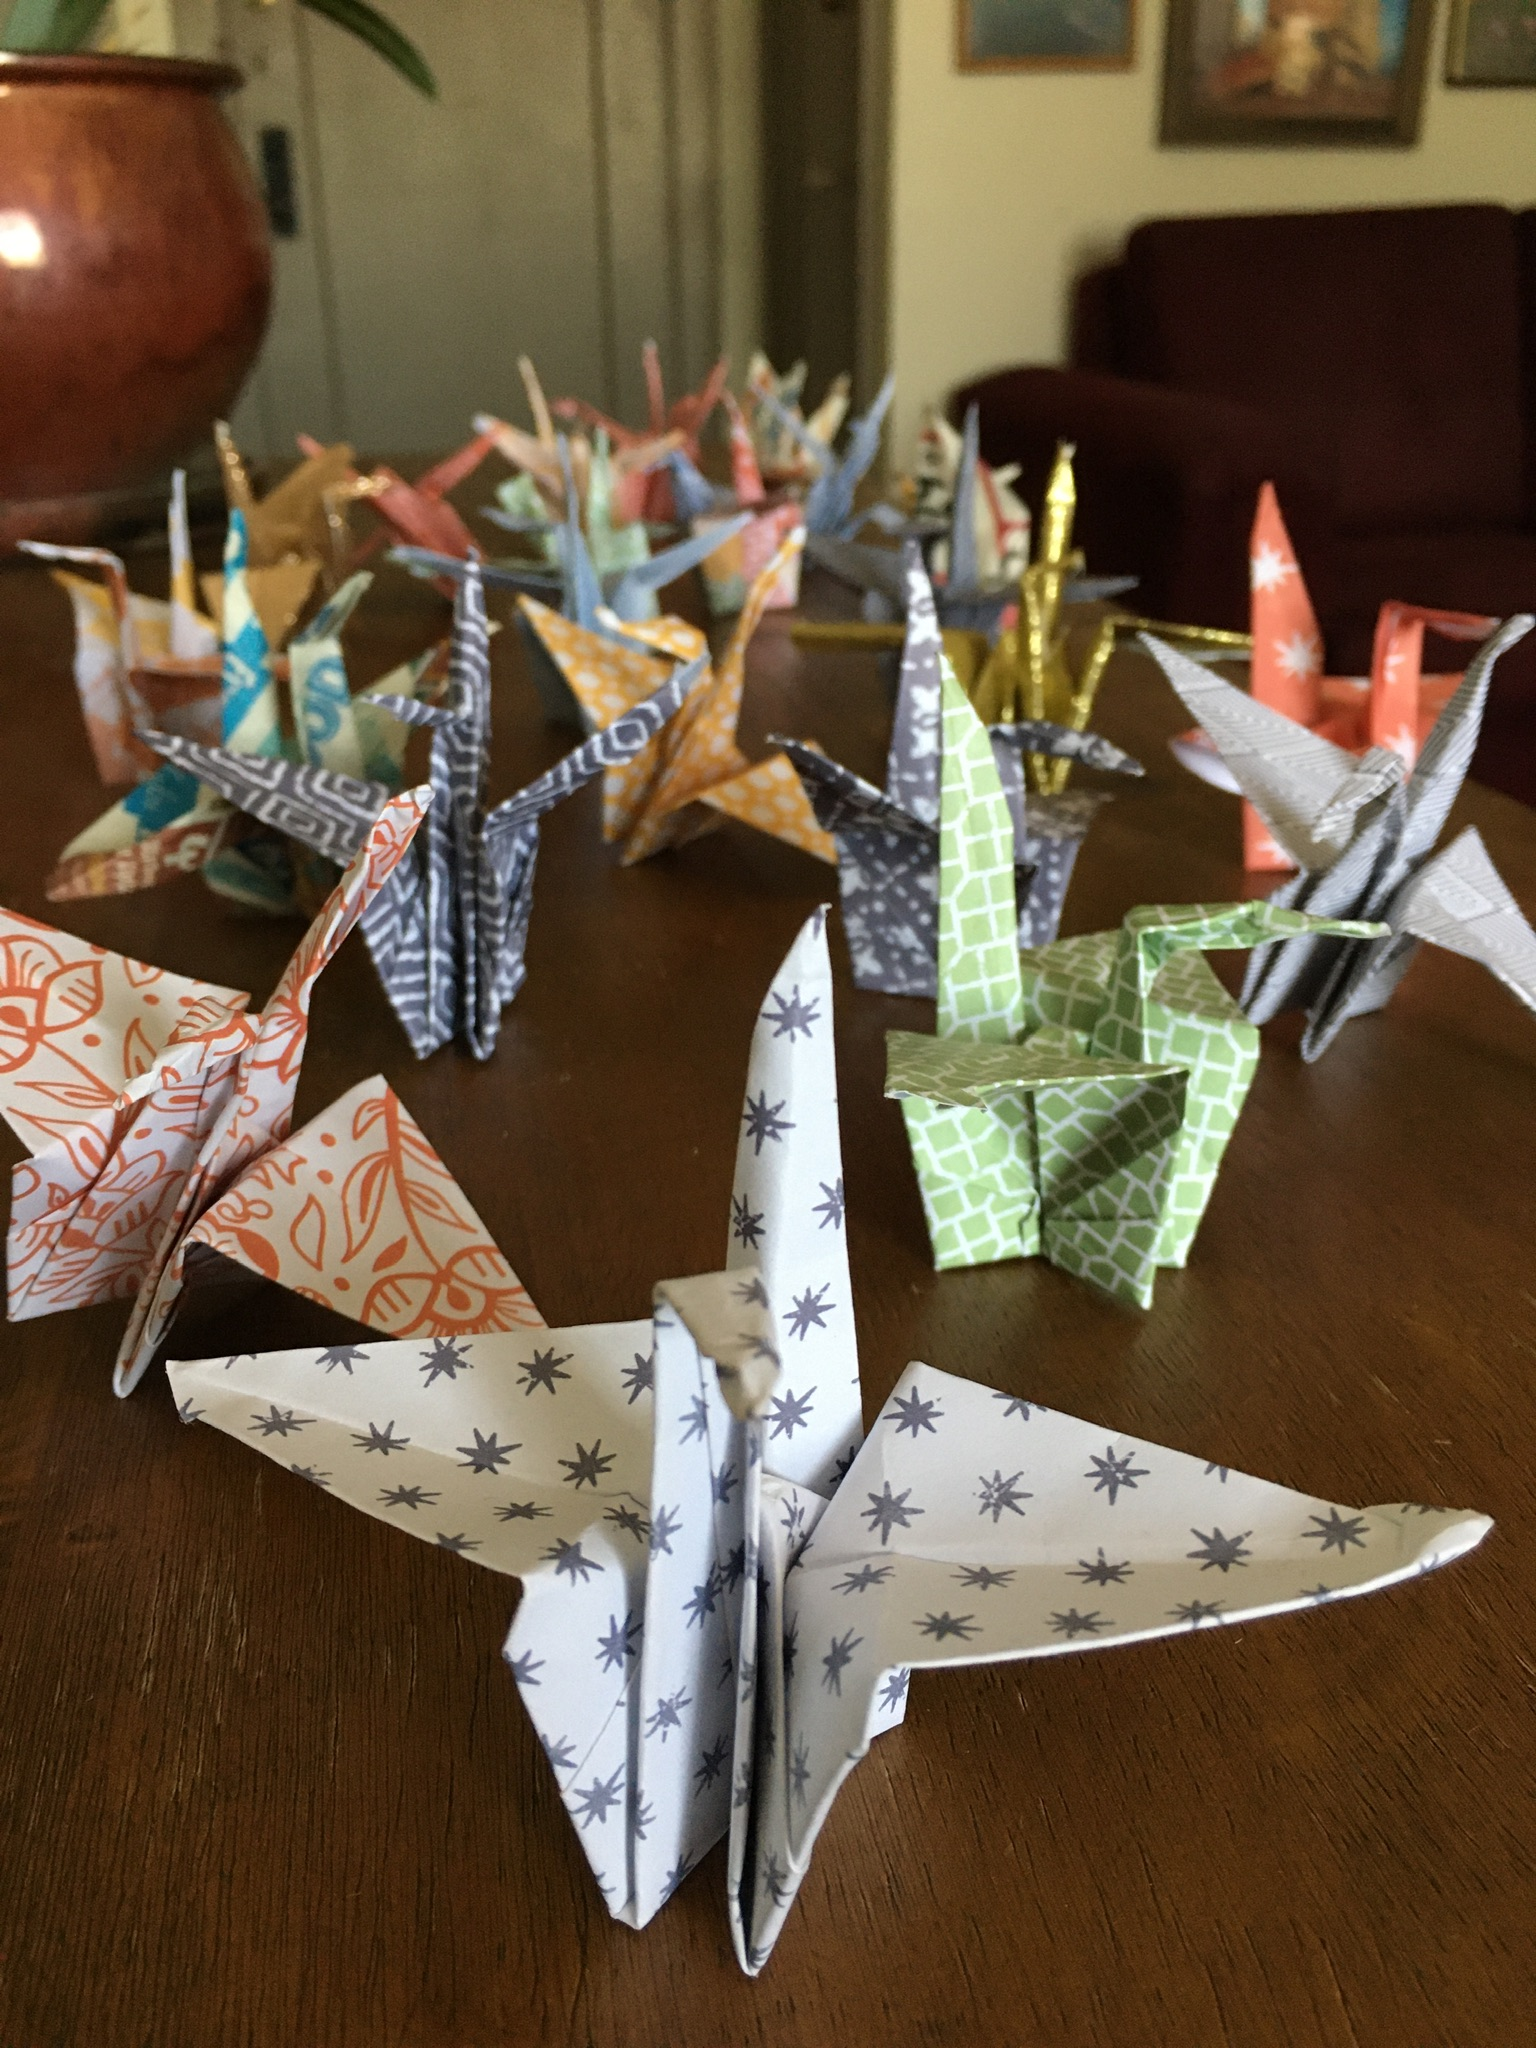 Sample paper cranes on a table